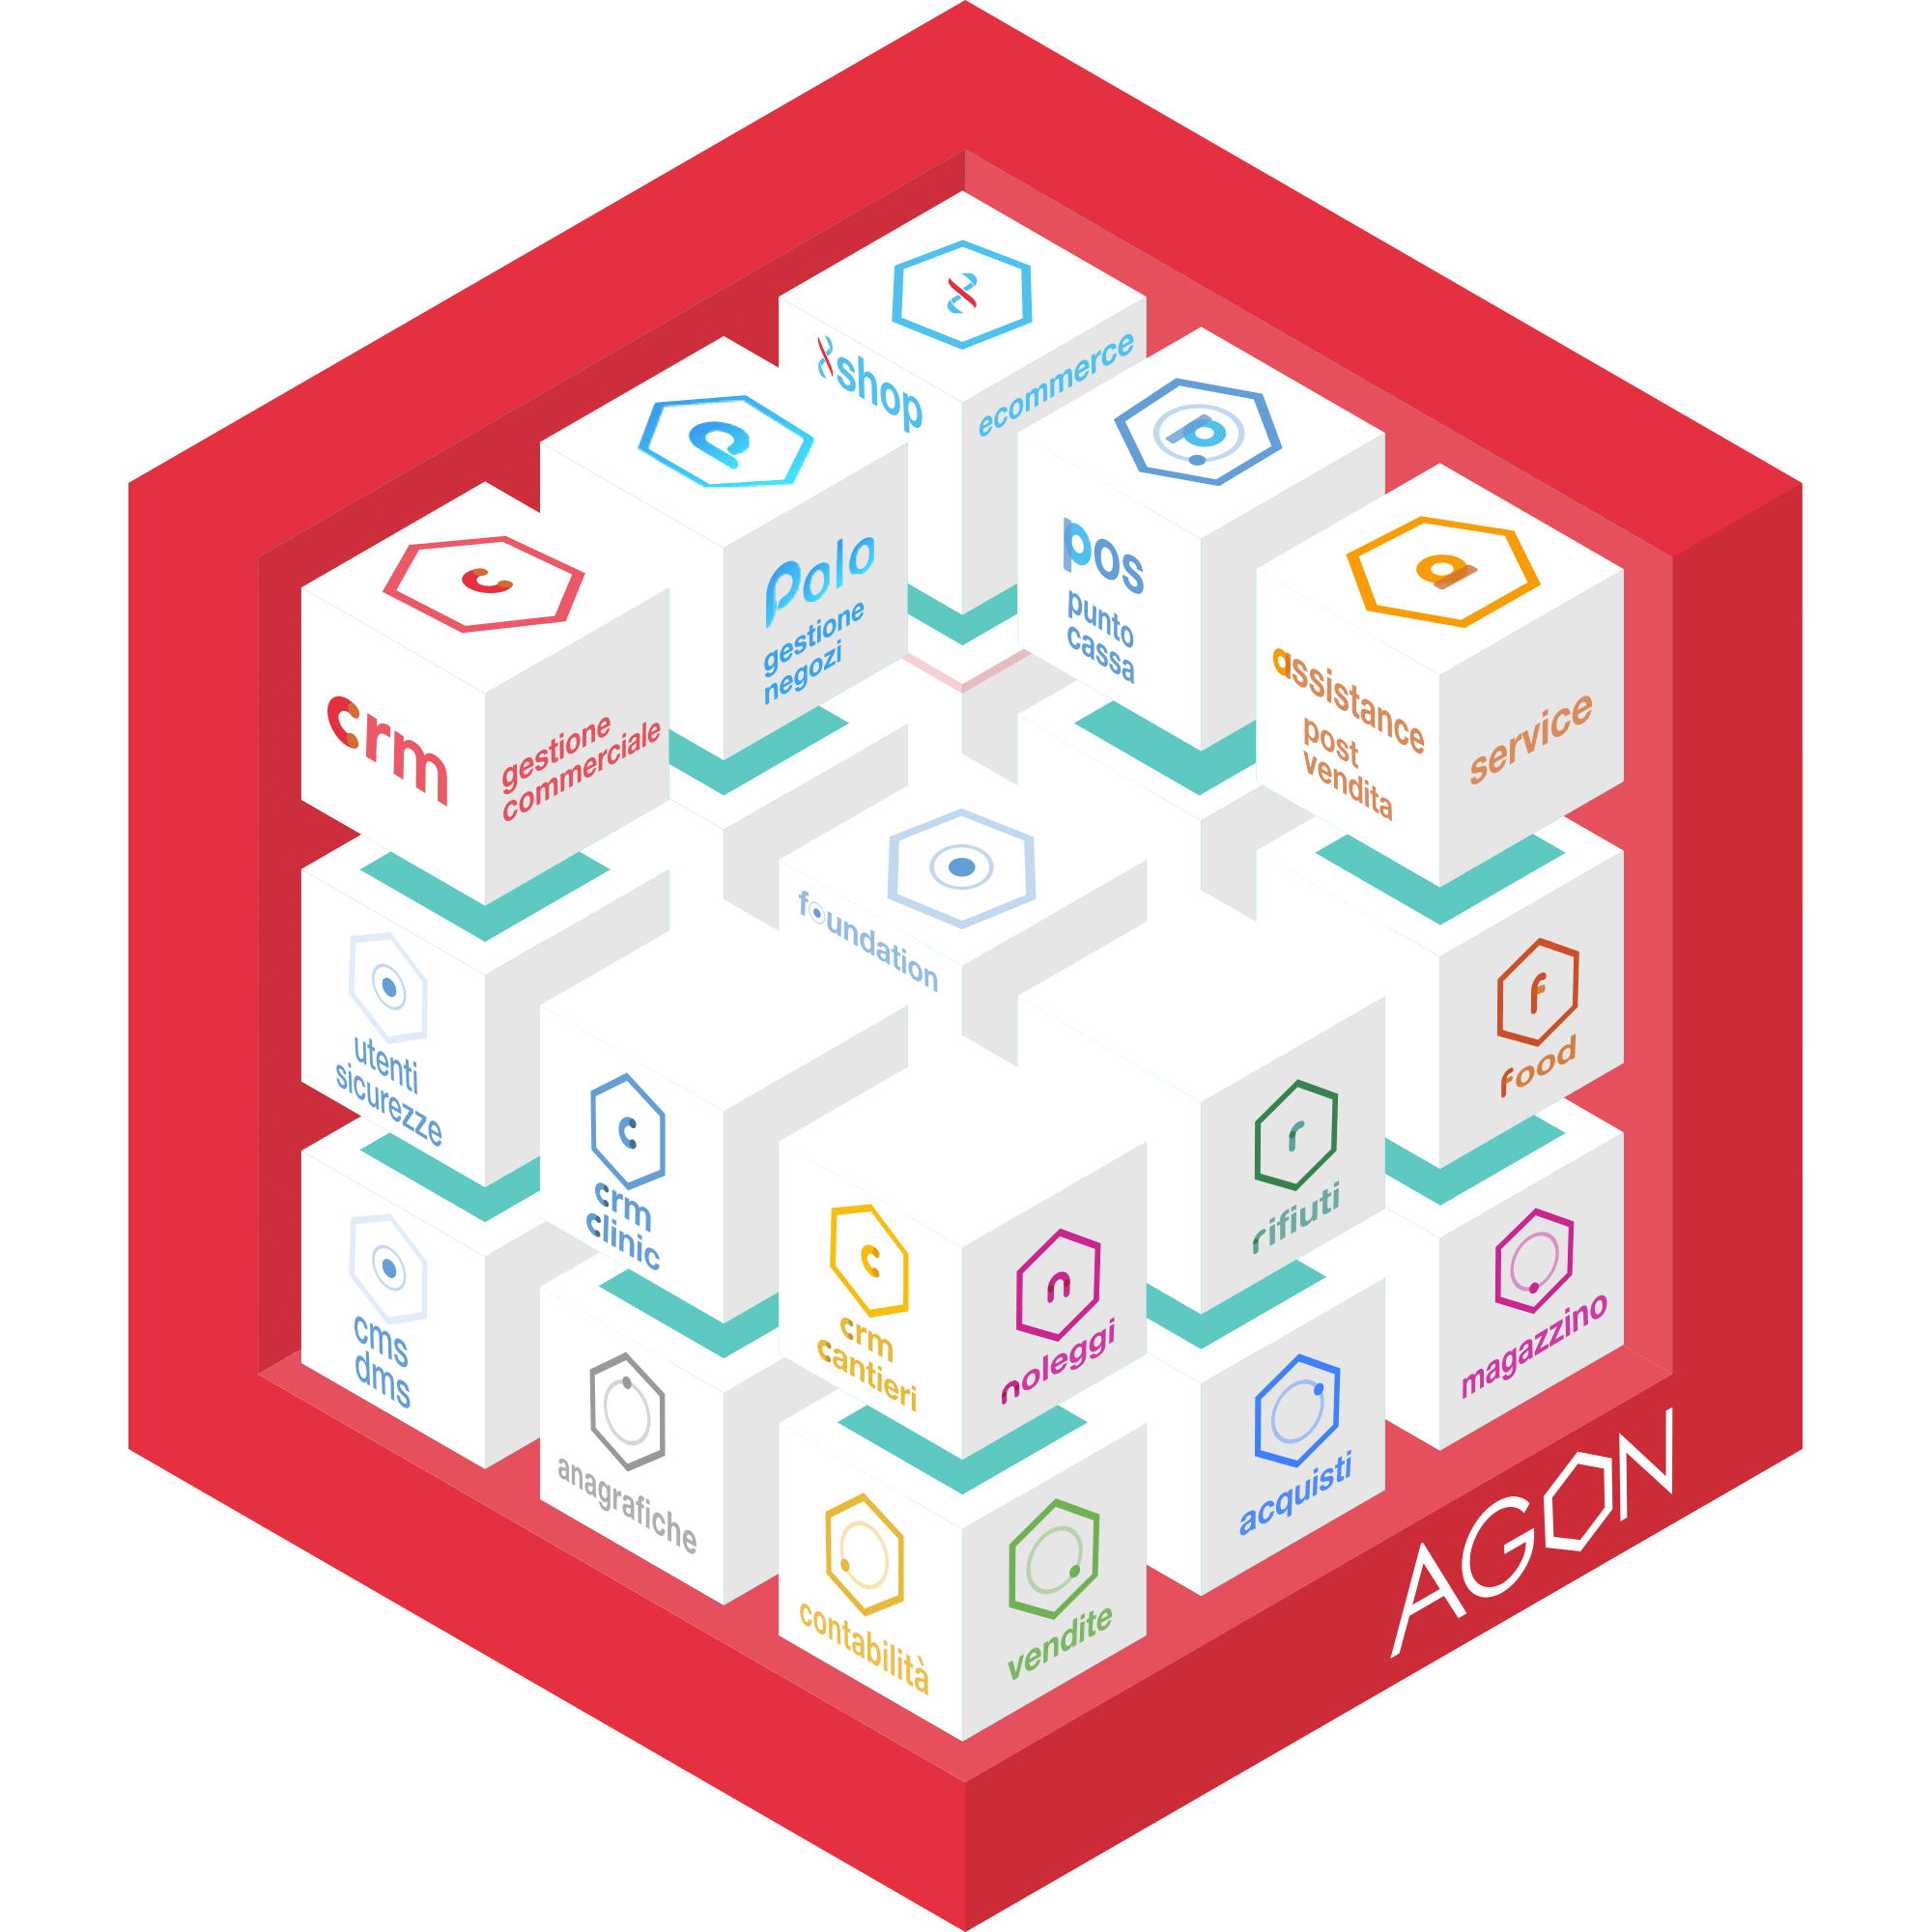 Agon business one